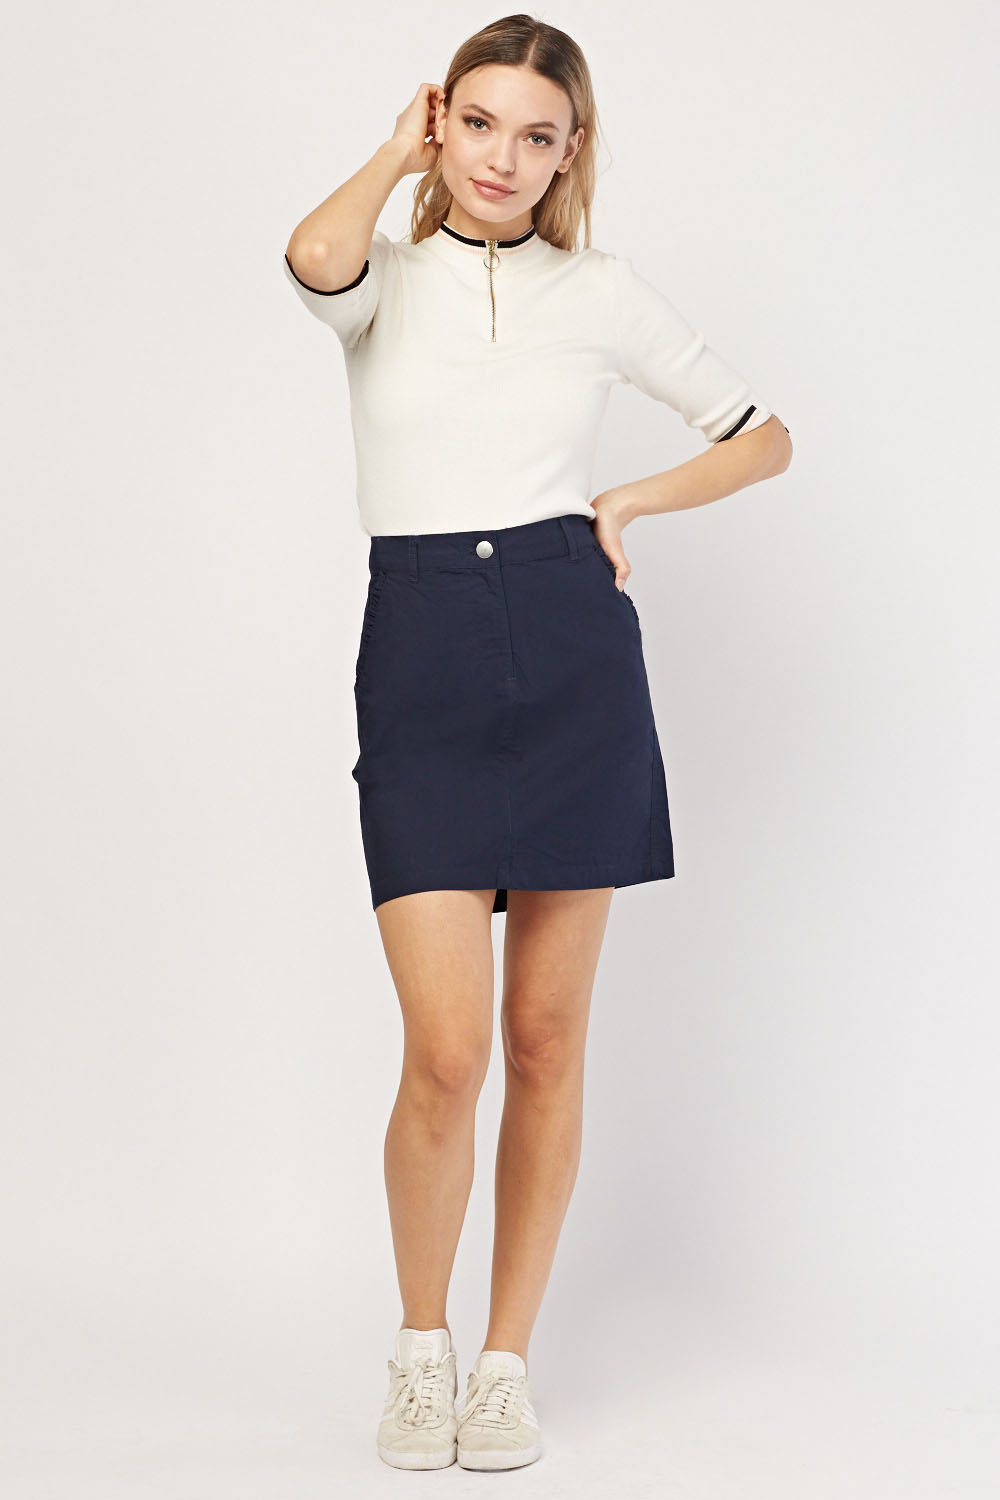 4b7159c46069 Ruffle Pocket Trim Mini Skirt - Just £5